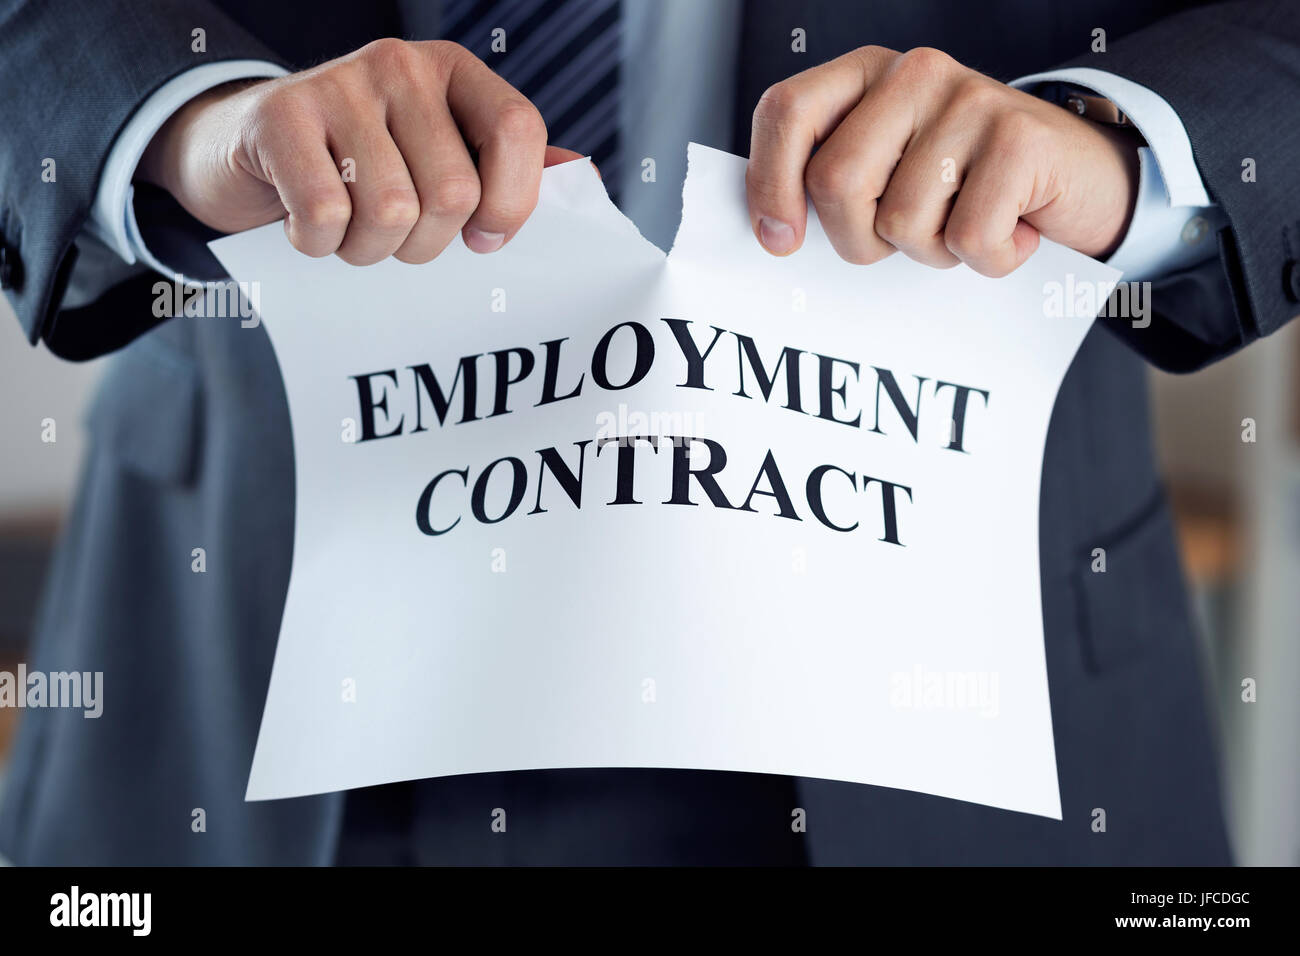 Close up of businessman hands breaking employment contract. Boss dismissing an employee. Bankruptcy, redundancy - Stock Image